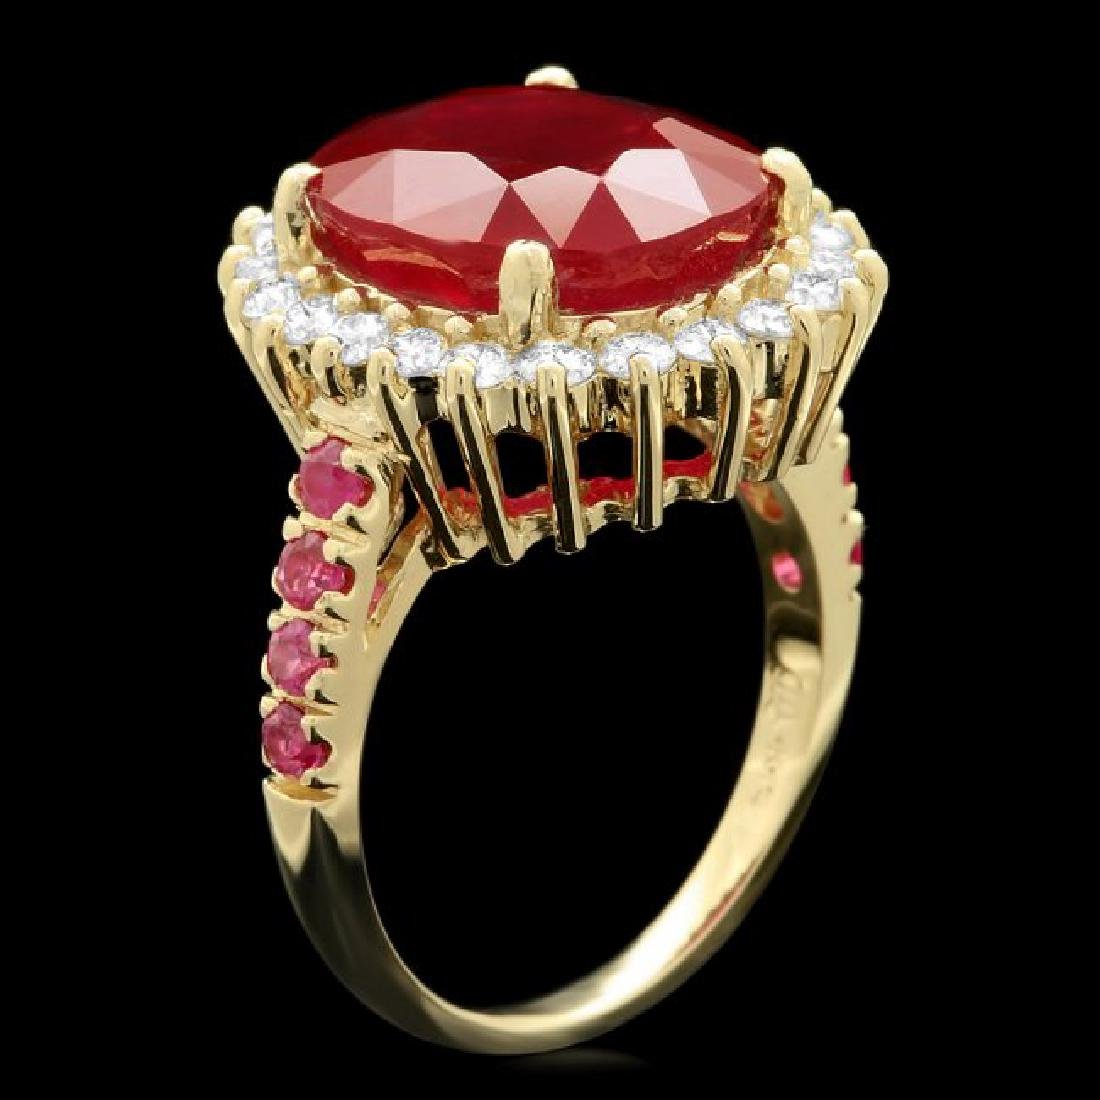 14k Yellow Gold 10.3ct Ruby 0.80ct Diamond Ring - 2